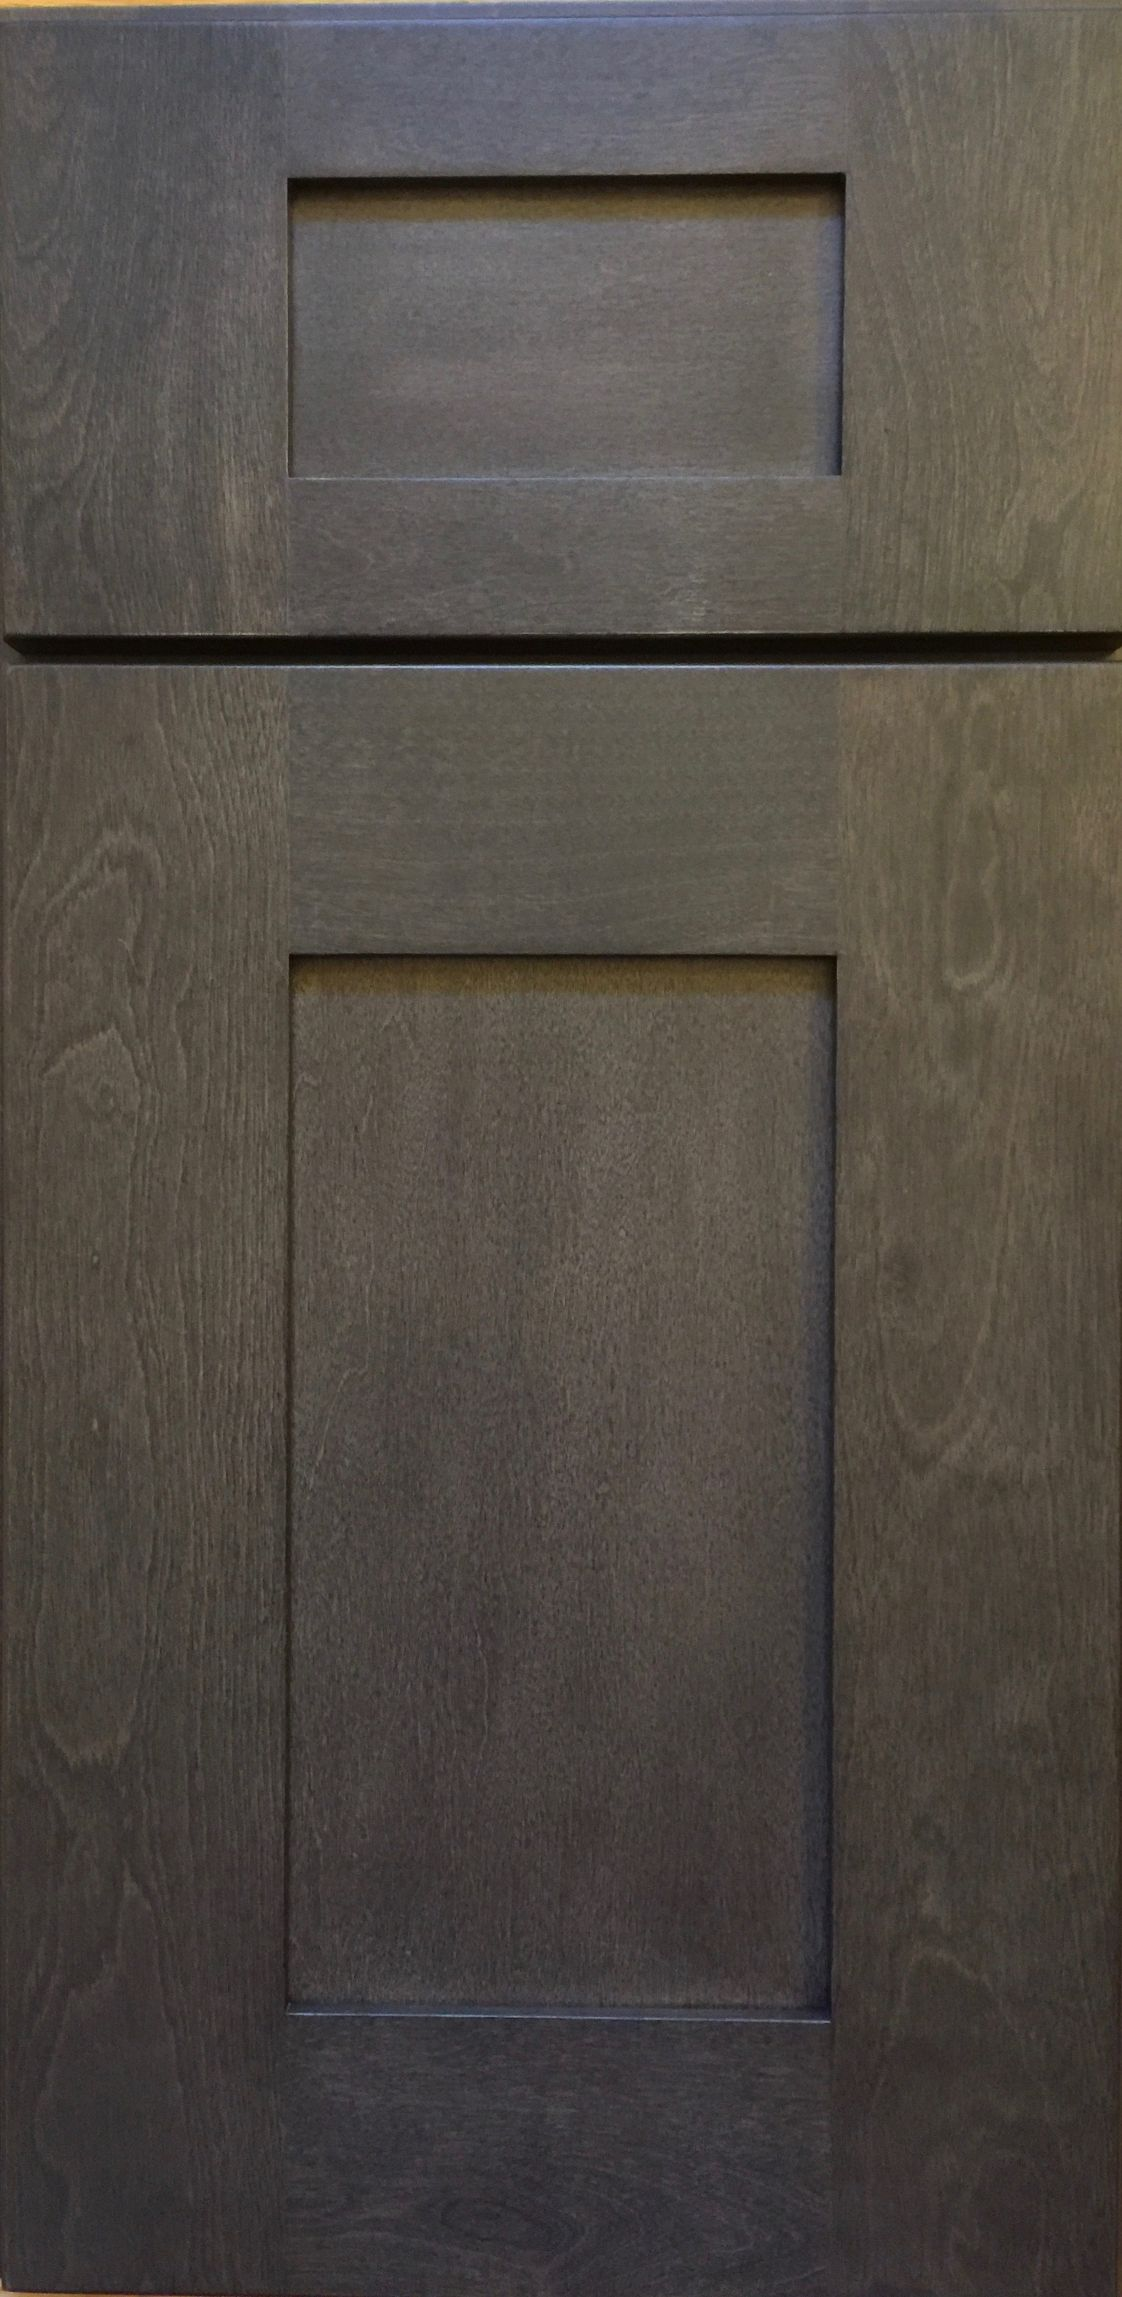 GREYSTONE SHAKER SAMPLE Kitchen Cabinet Discounts RTA Cabinets